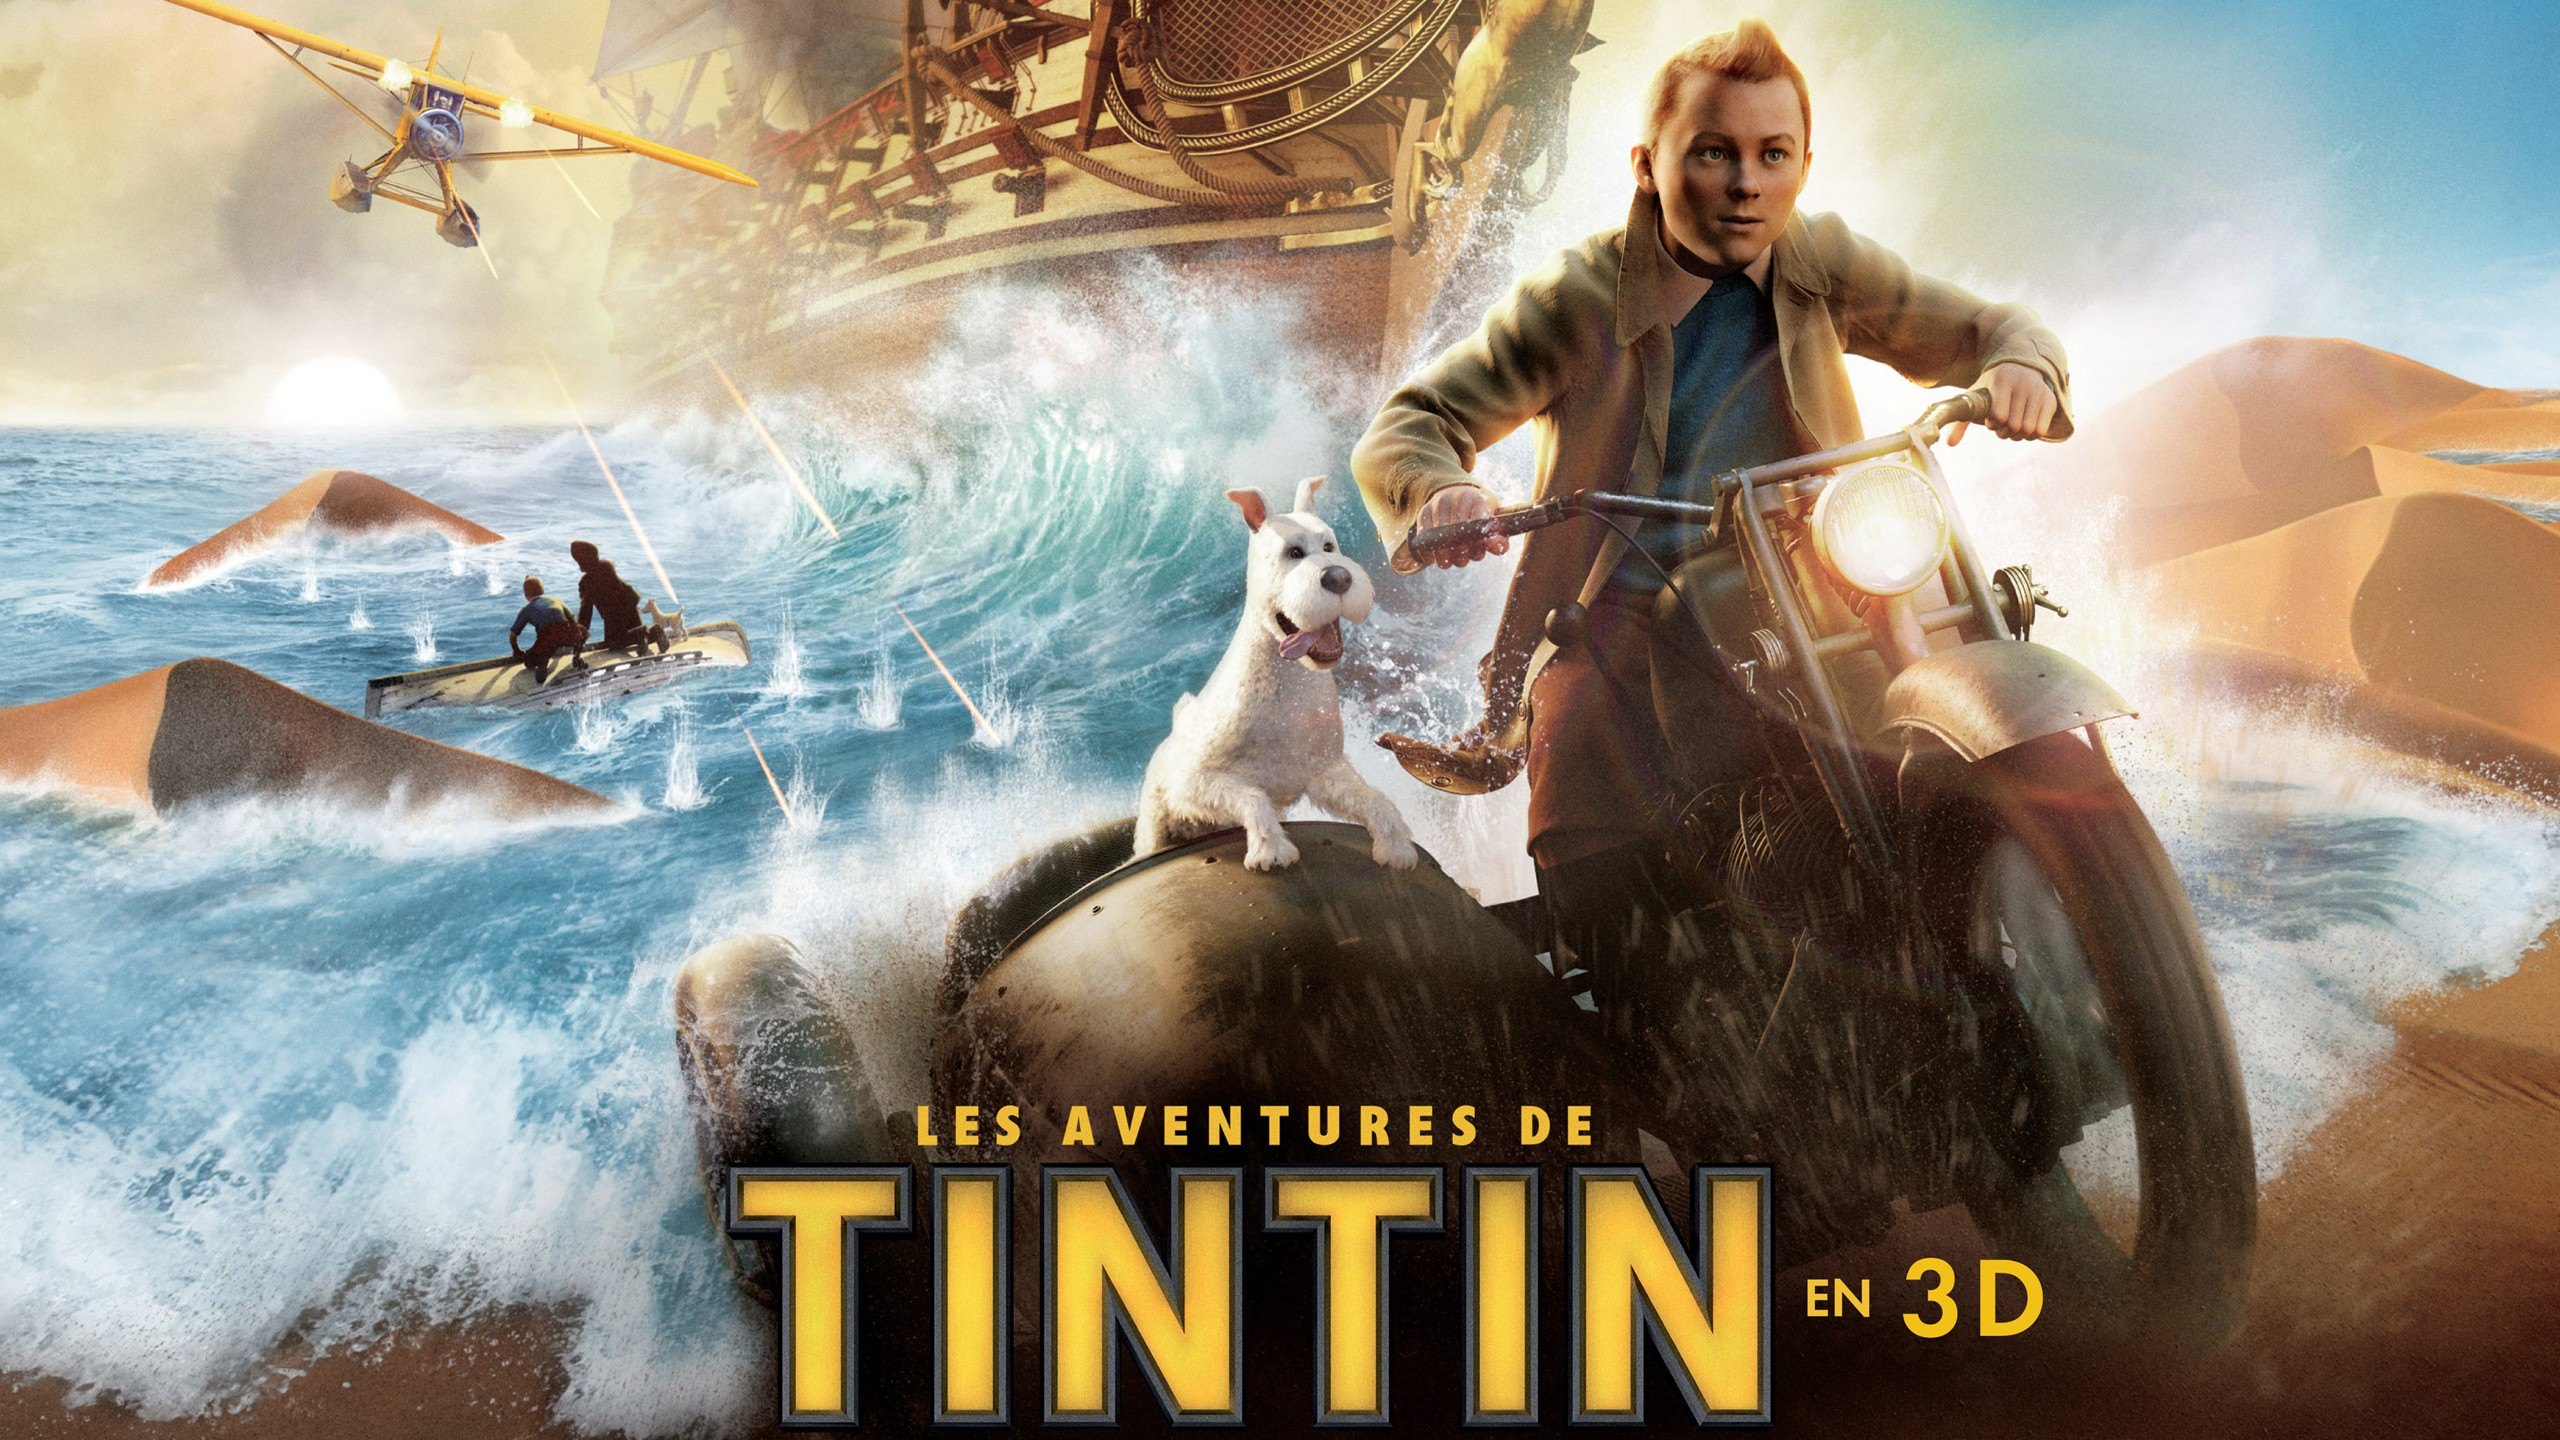 Beast 3d Wallpaper Tintin In French Wallpapers Hd Wallpapers Id 10444